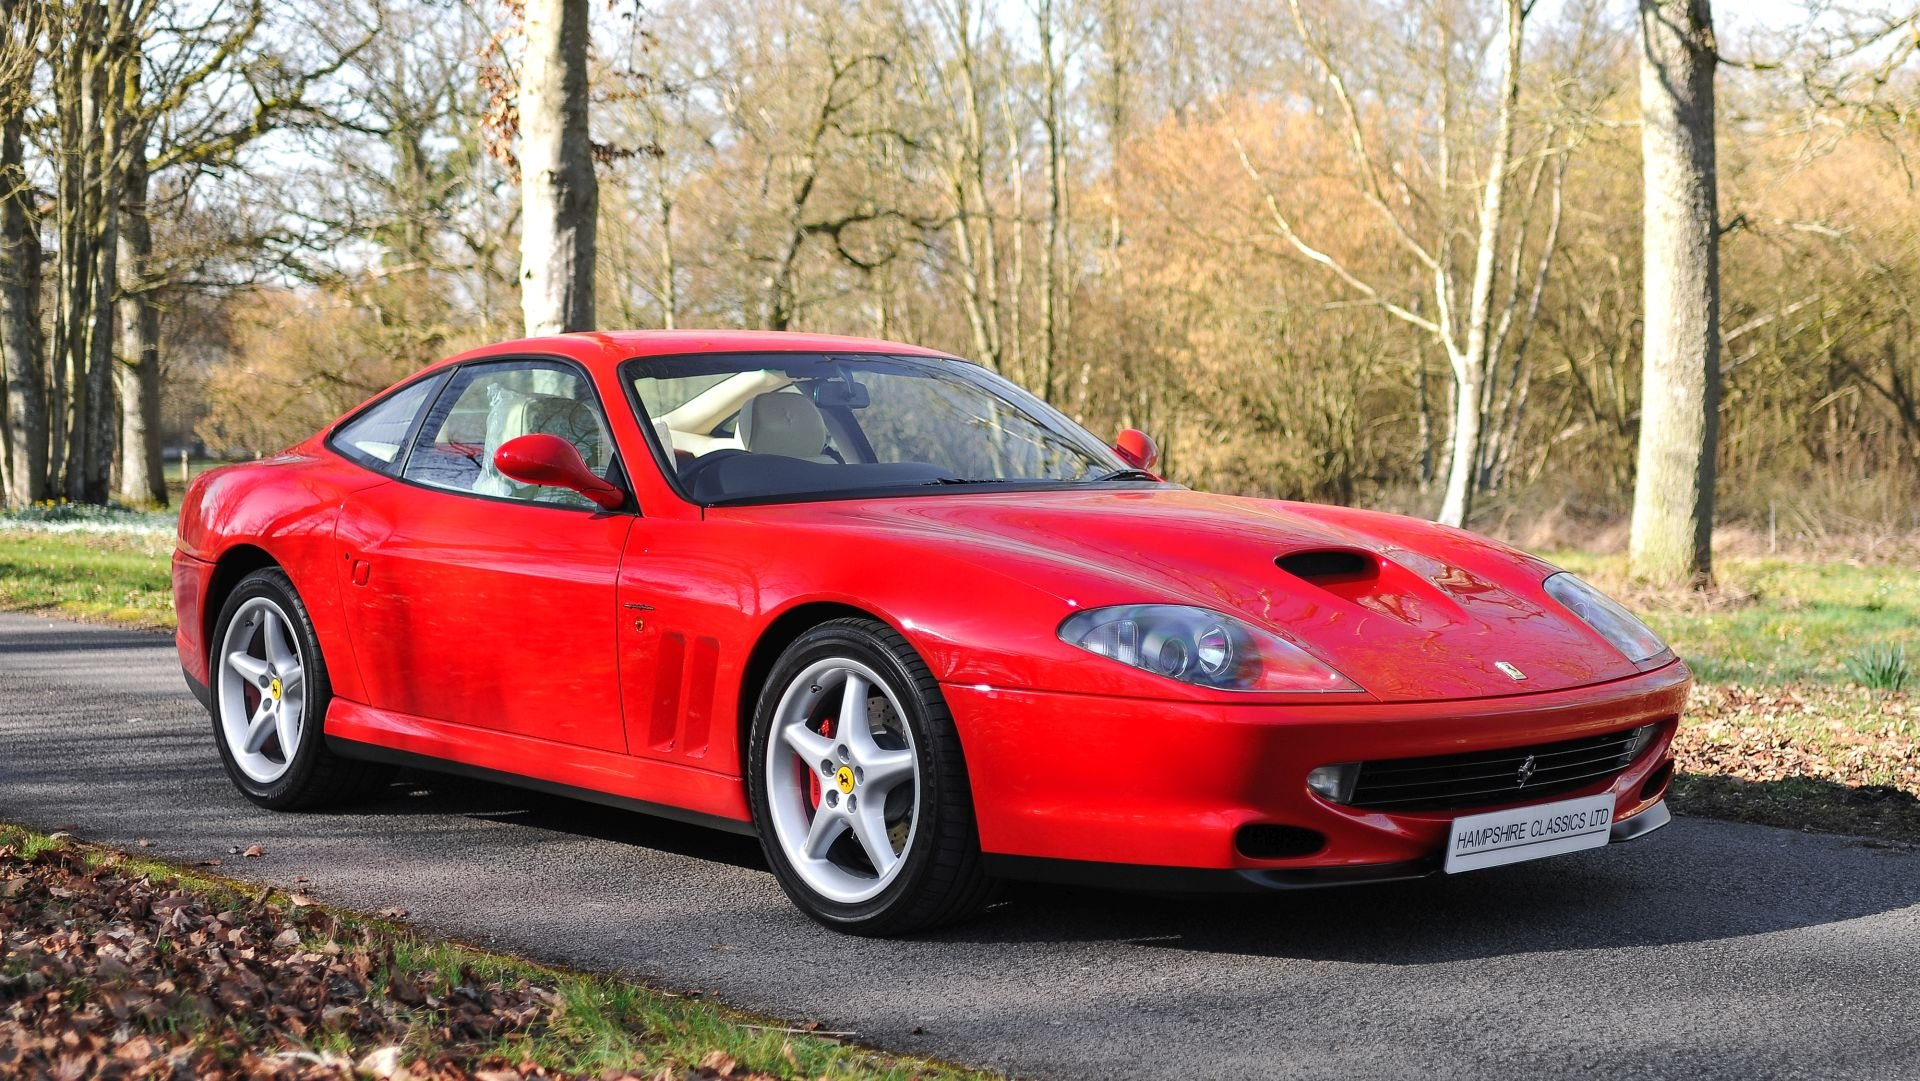 1999 Ferrari 550 Maranello - Only 12,926 Miles! For Sale (picture 1 of 6)